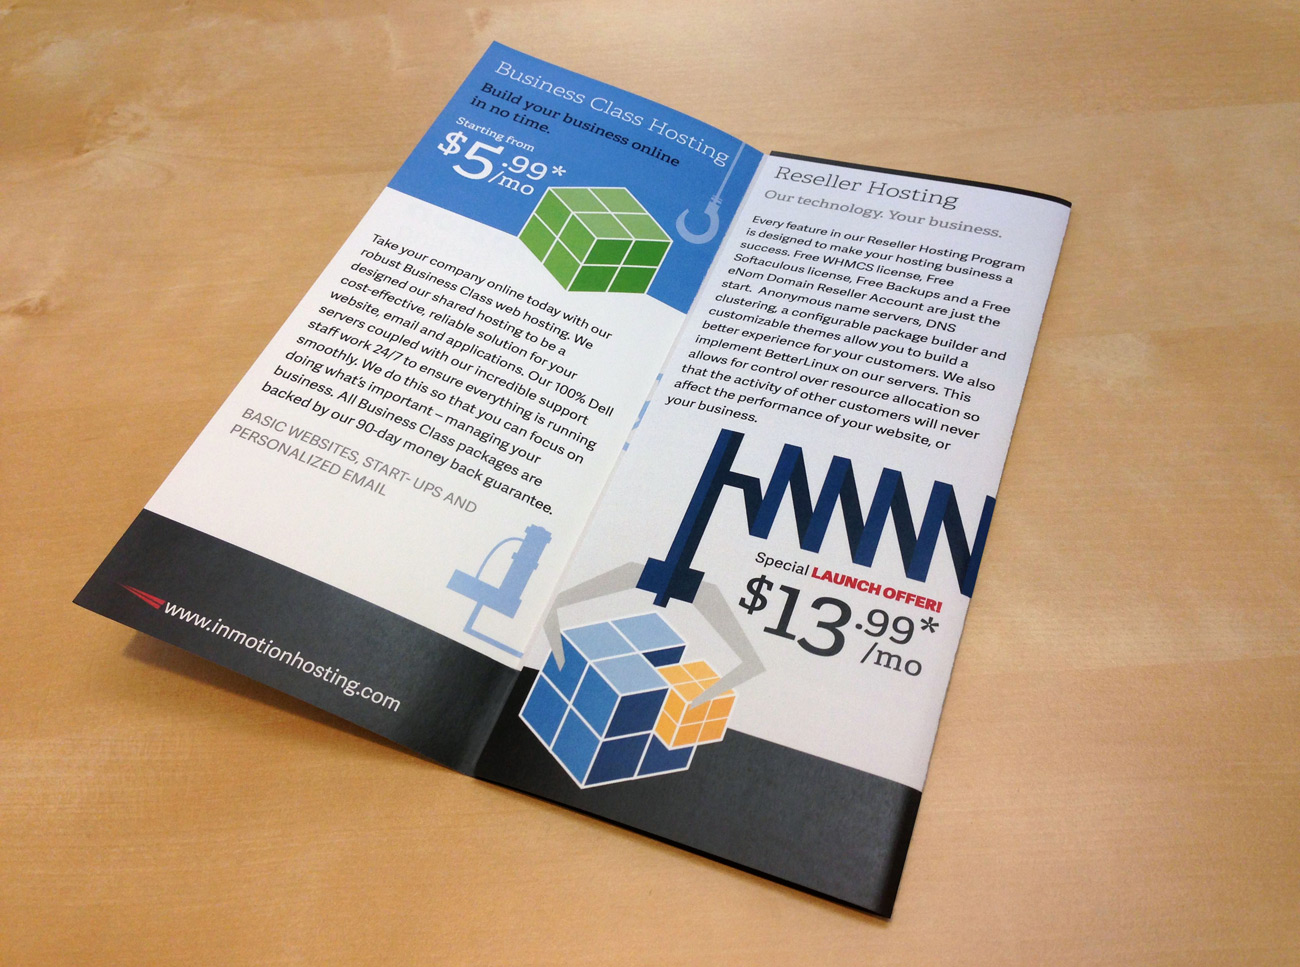 inmotion-hosting-brochure-fold